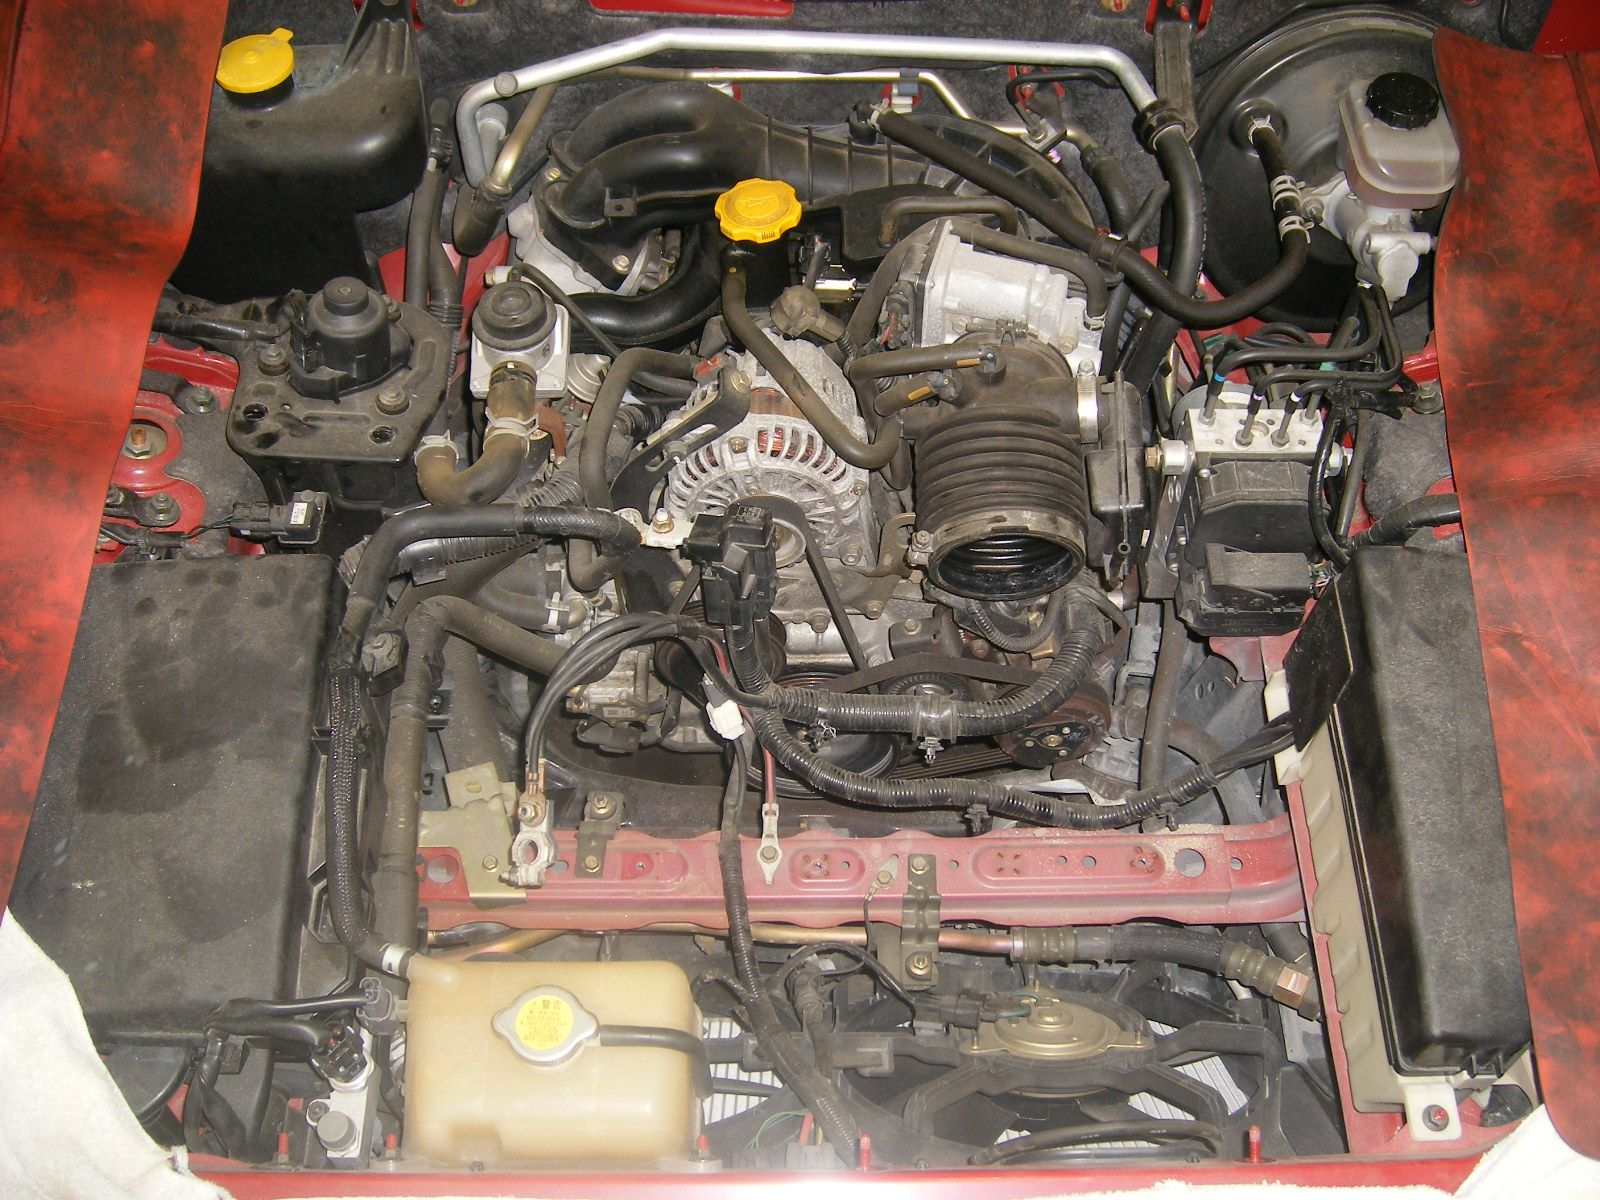 hight resolution of how to lift the engine out of the engine compartment mazda pinterest com mazda engine diagram